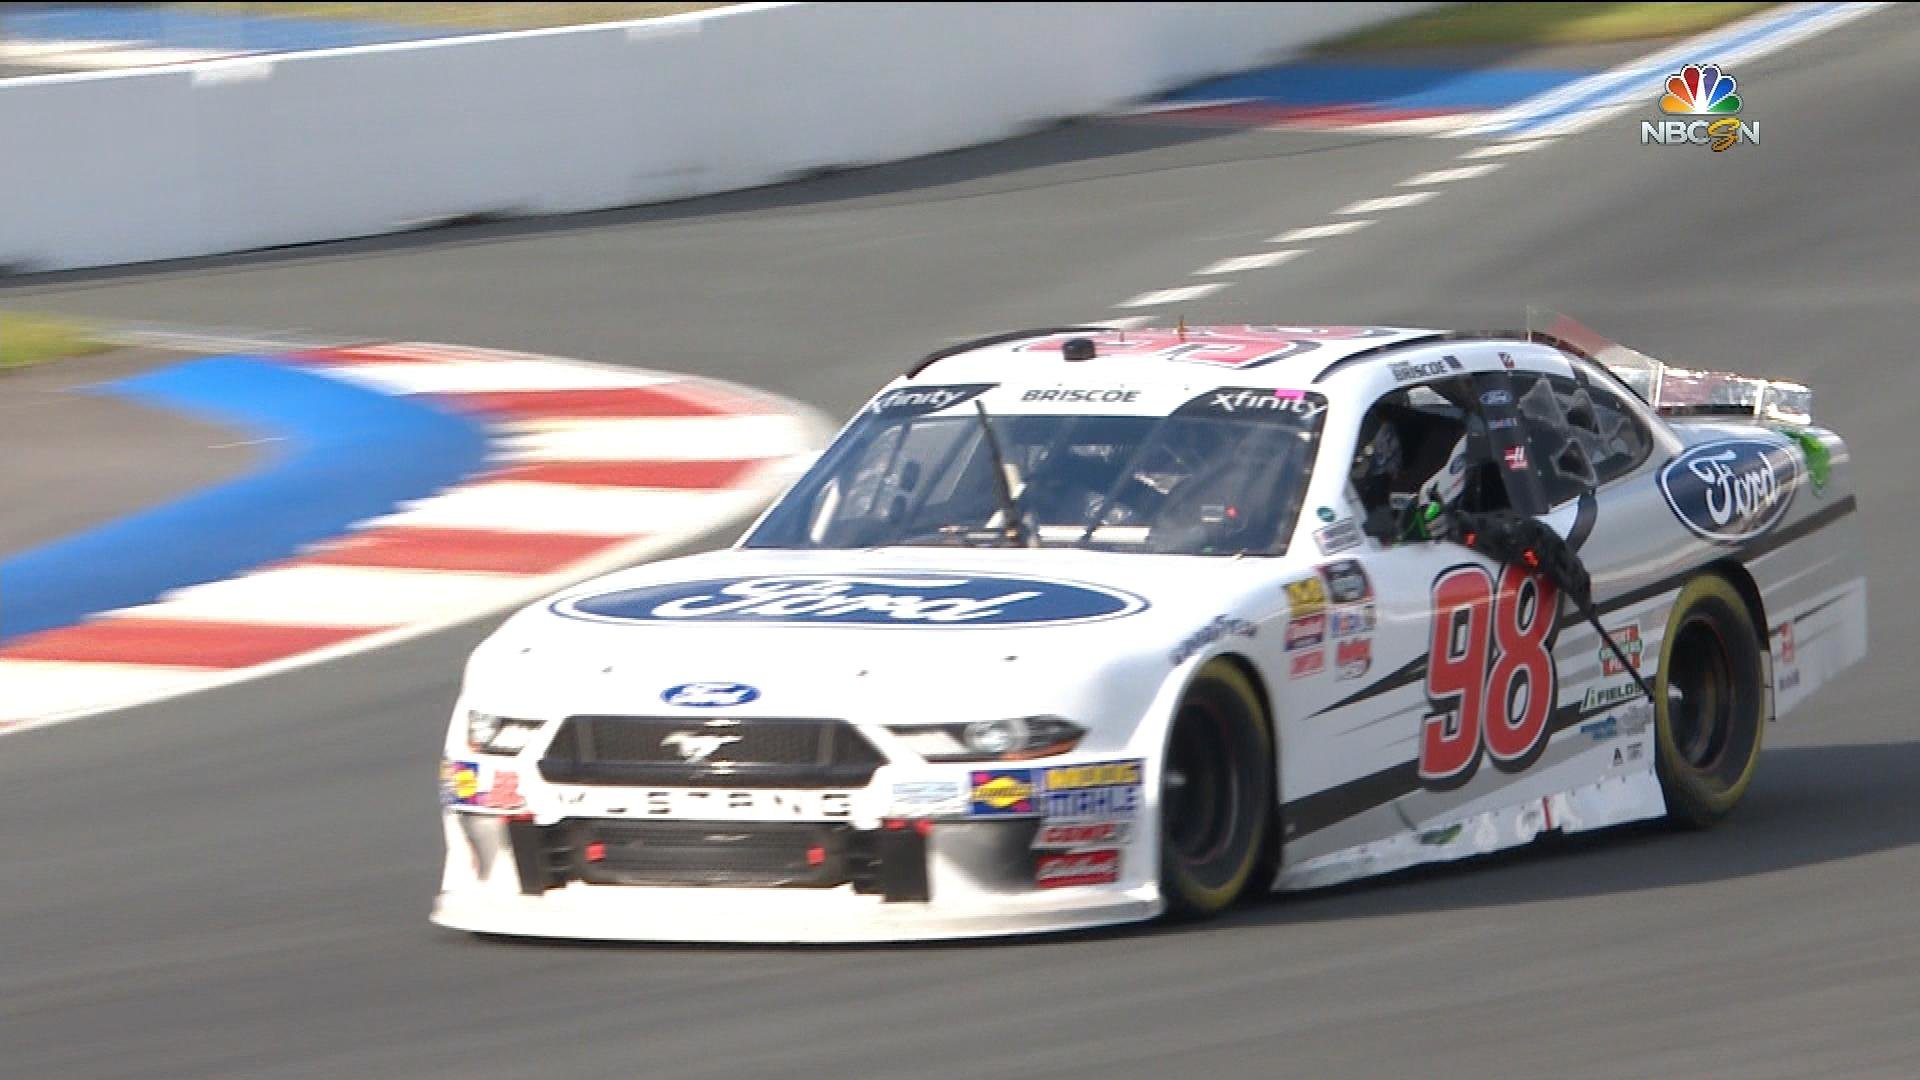 Chase Briscoe captures first NASCAR Xfinity Series win   NBC Sports